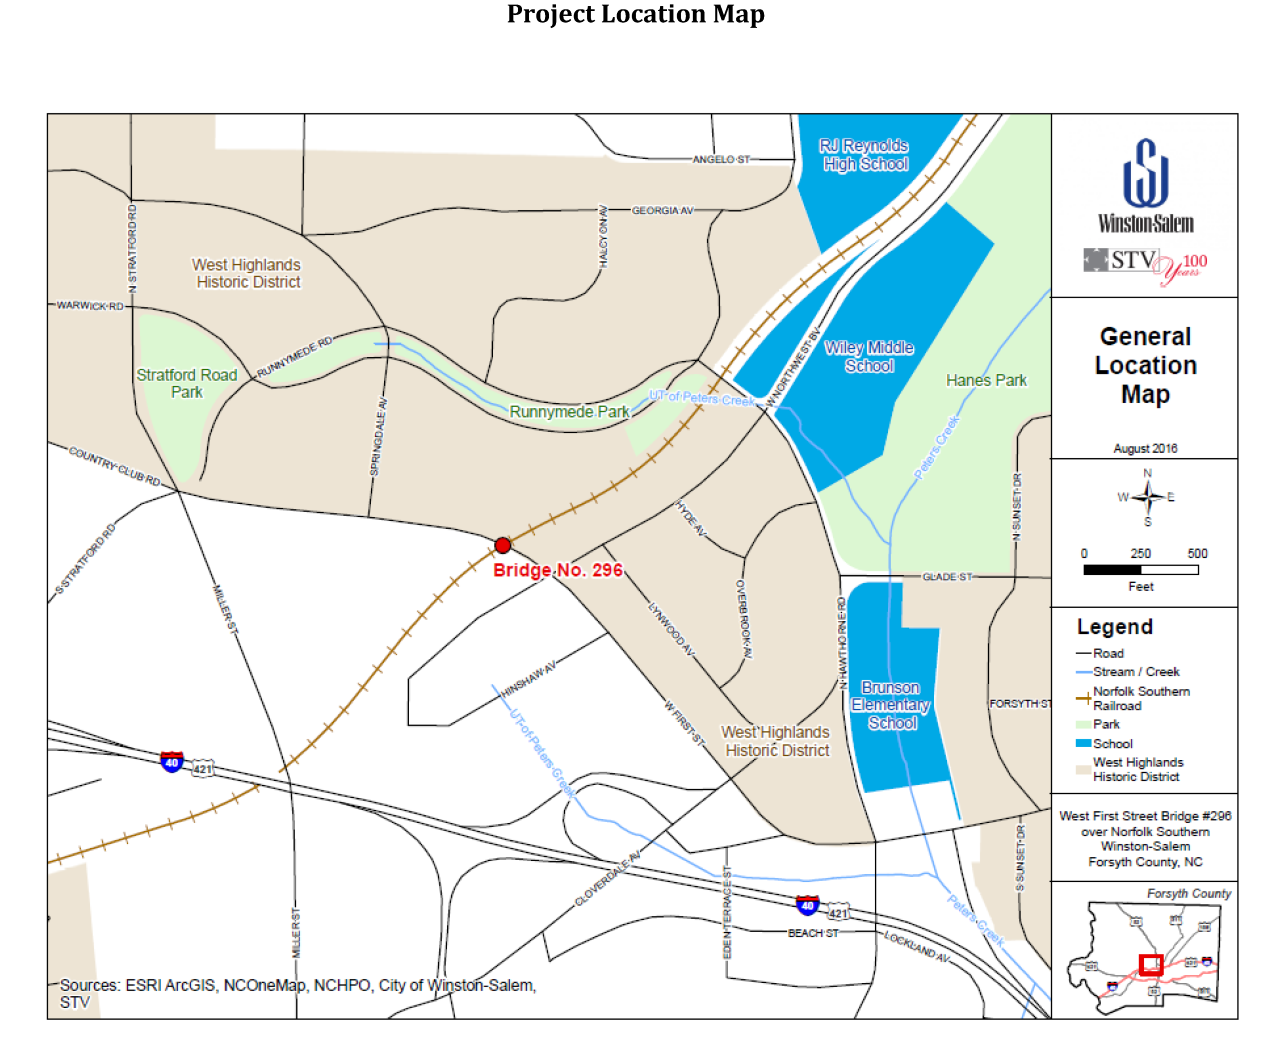 West First Street Bridge Construction Project Location Map